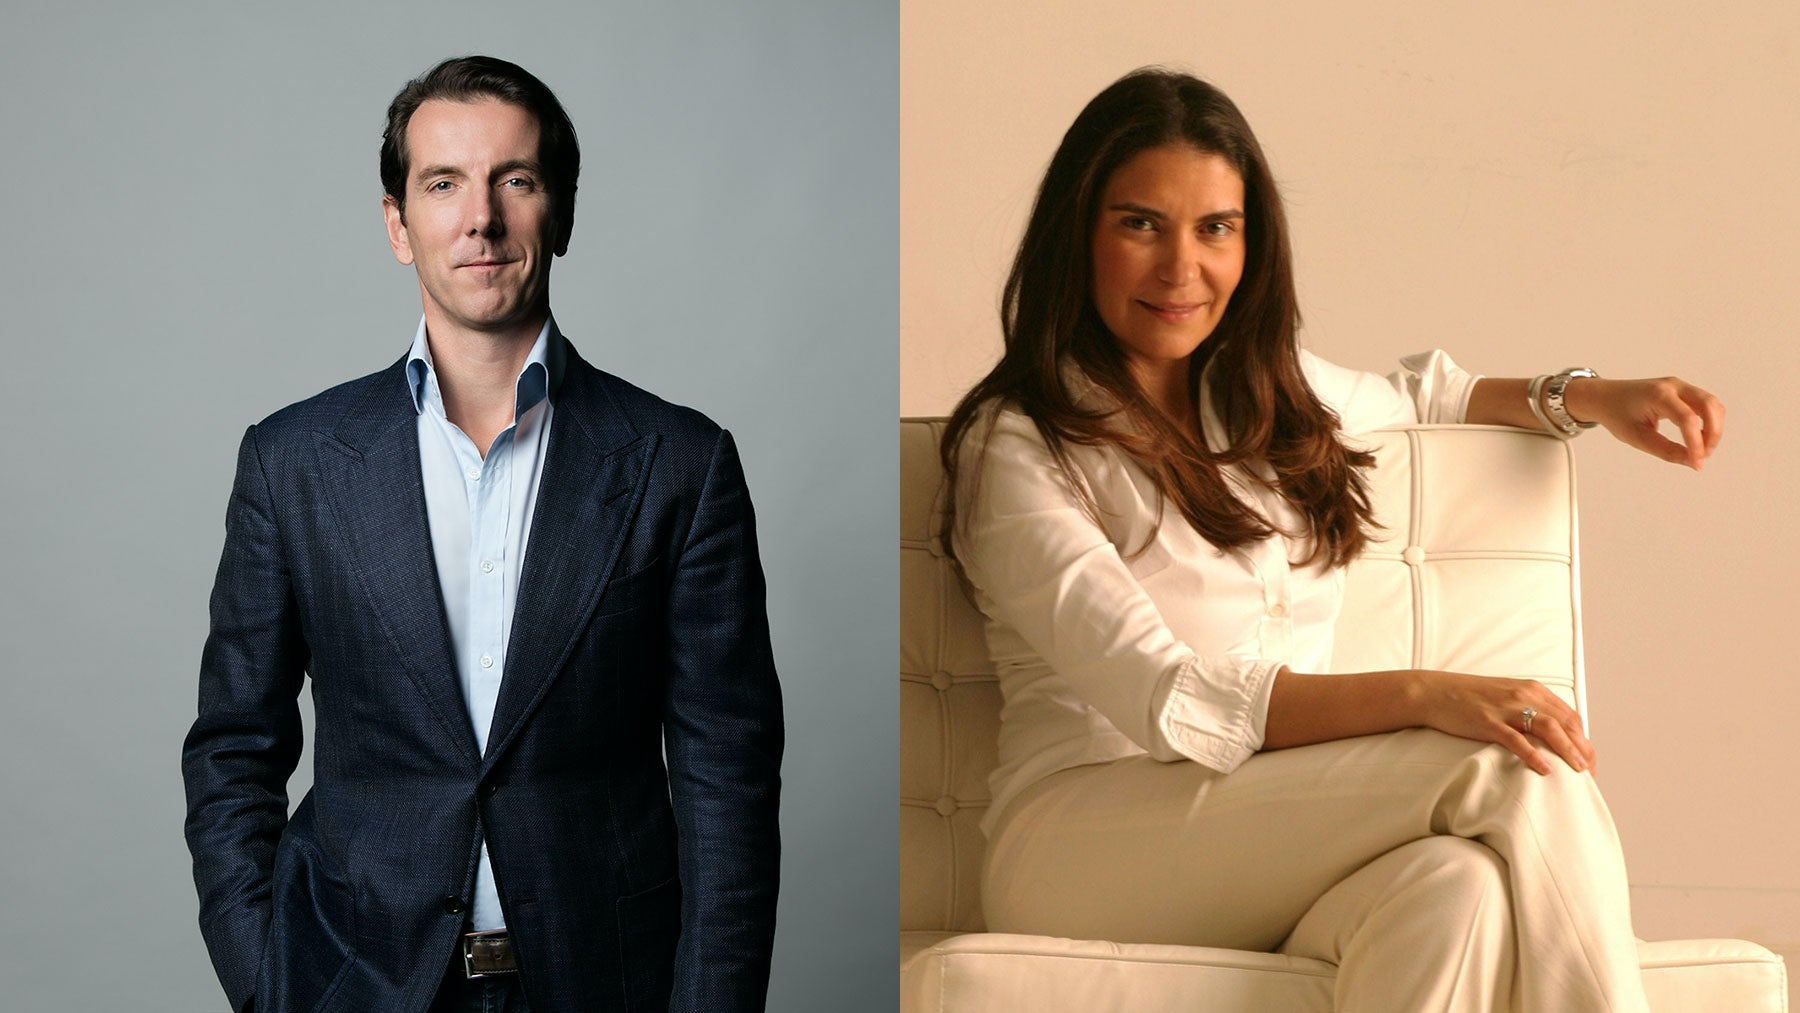 Damien Dernoncourt and Sagra Maceira de Rosen | Source: Courtesy